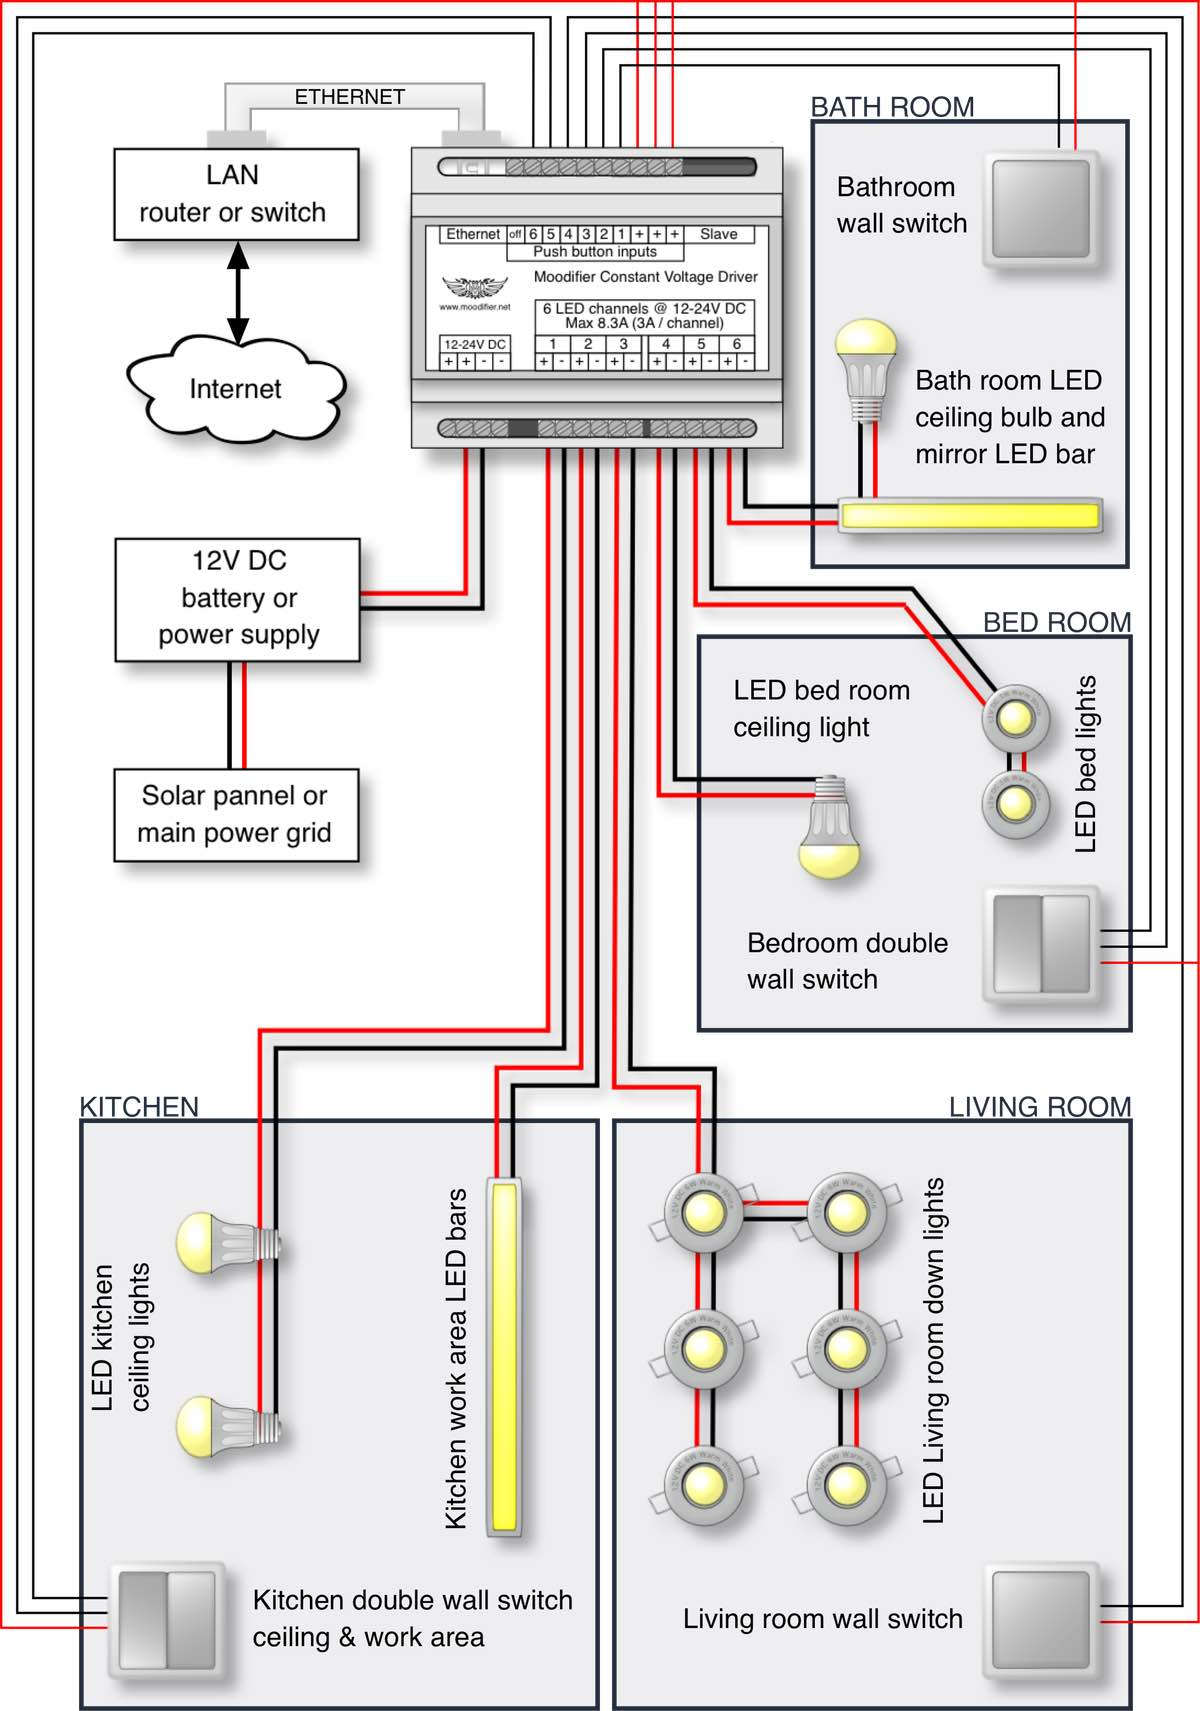 [SCHEMATICS_4JK]  12-24V DC Moodifier LED Lighting Installation - White Paper | Wiring Diagram For A Room |  | Barsark